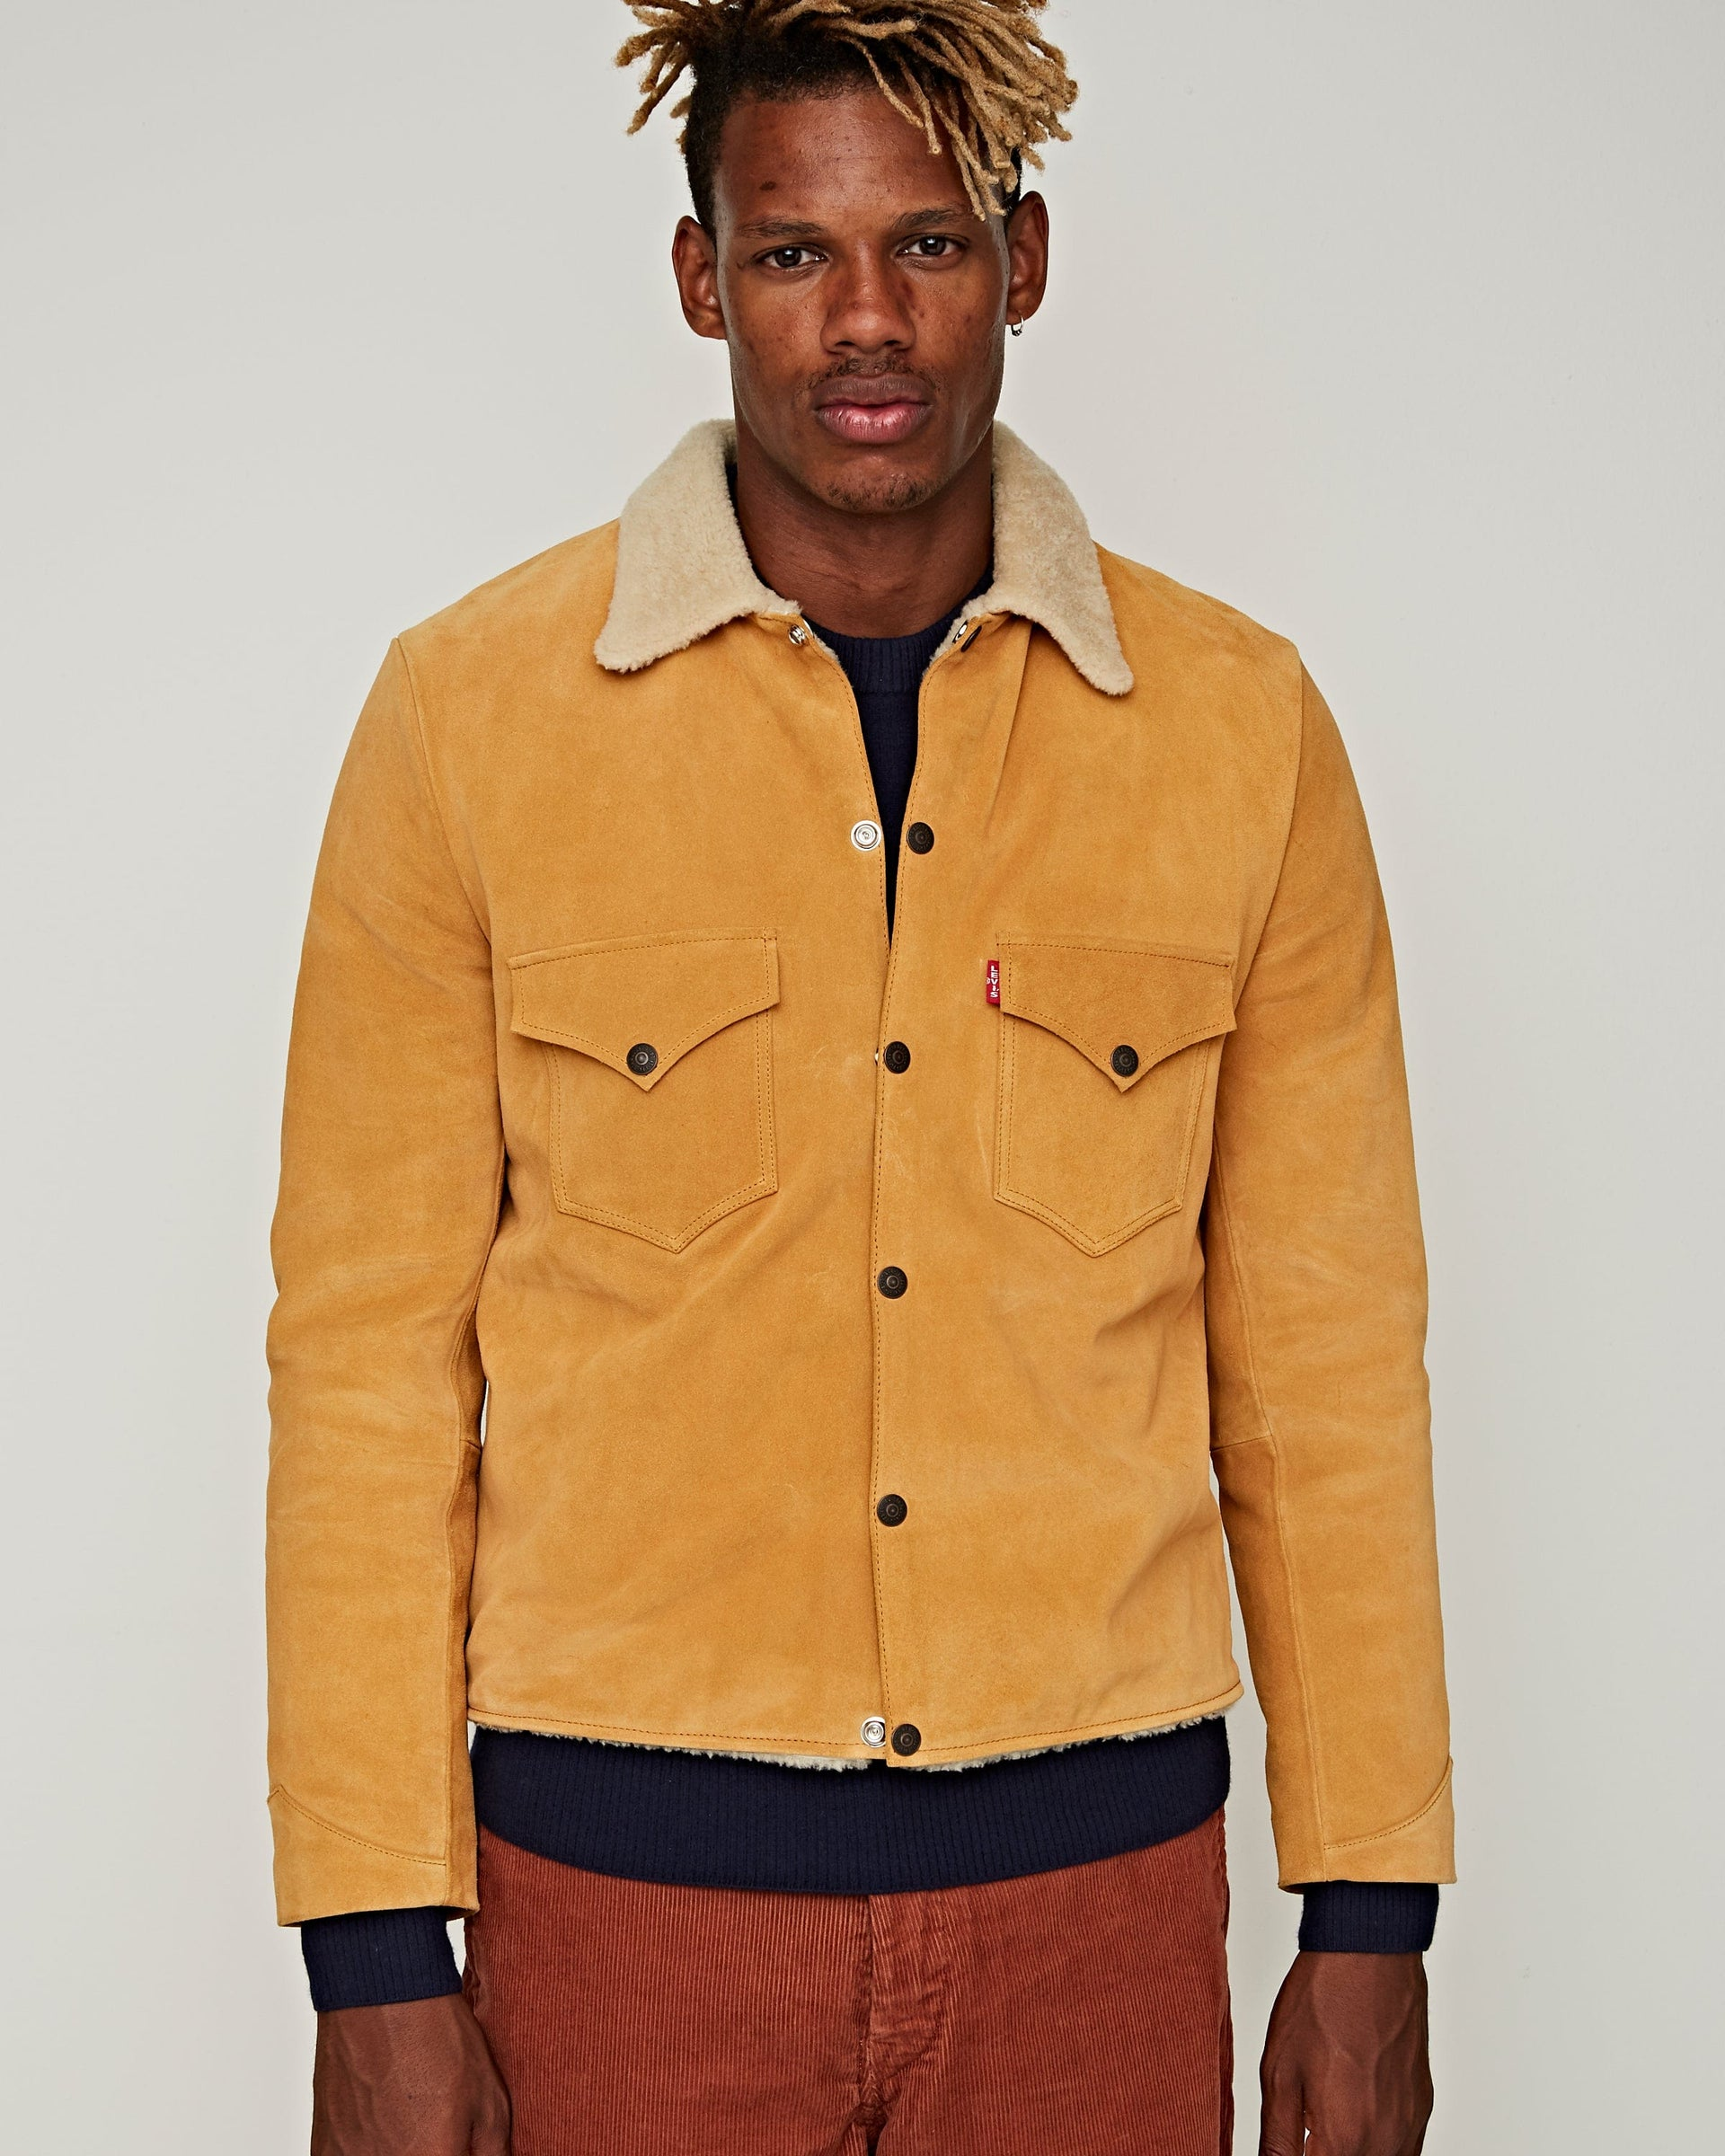 LVC Suede Sherpa Trucker Golden Nugget